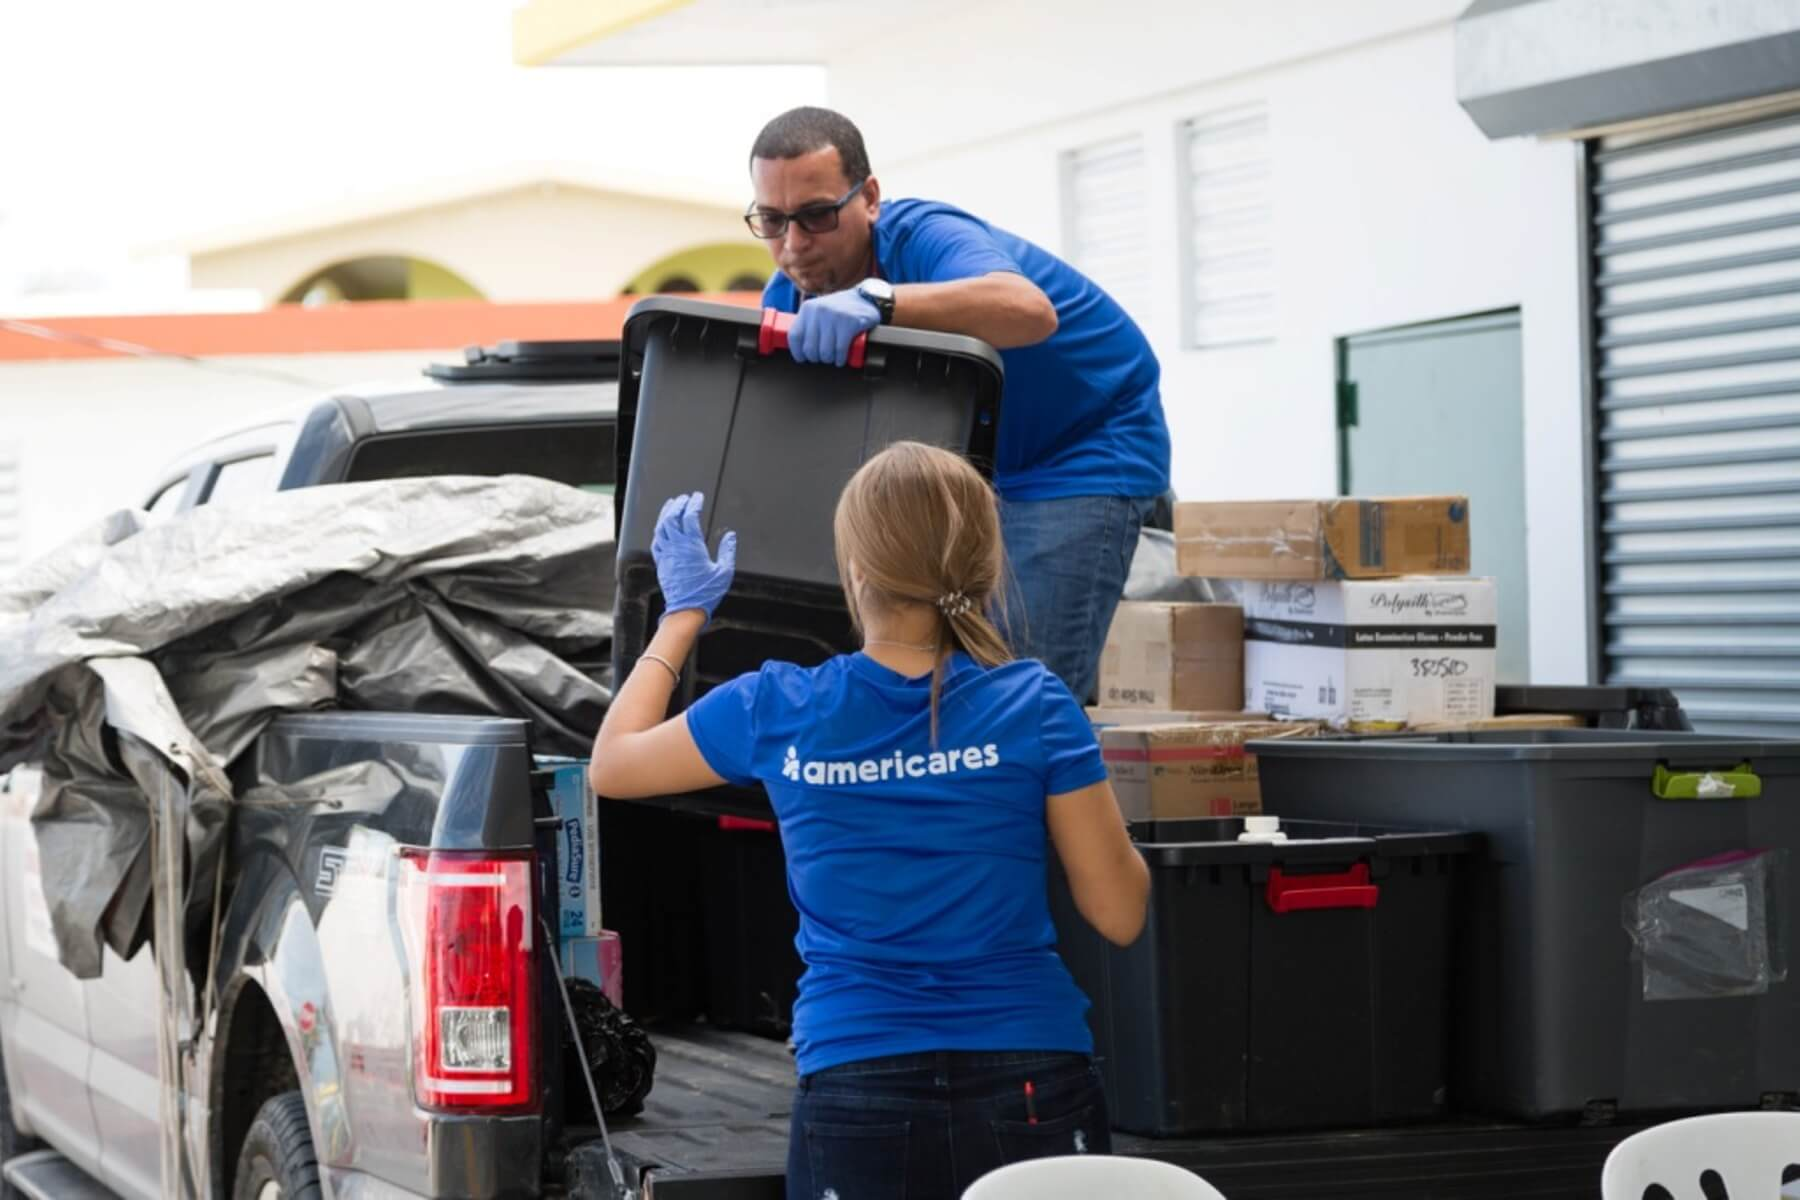 Our employees and volunteers are committed to saving lives and building healthier futures for people in crisis in the U.S. and around the world.